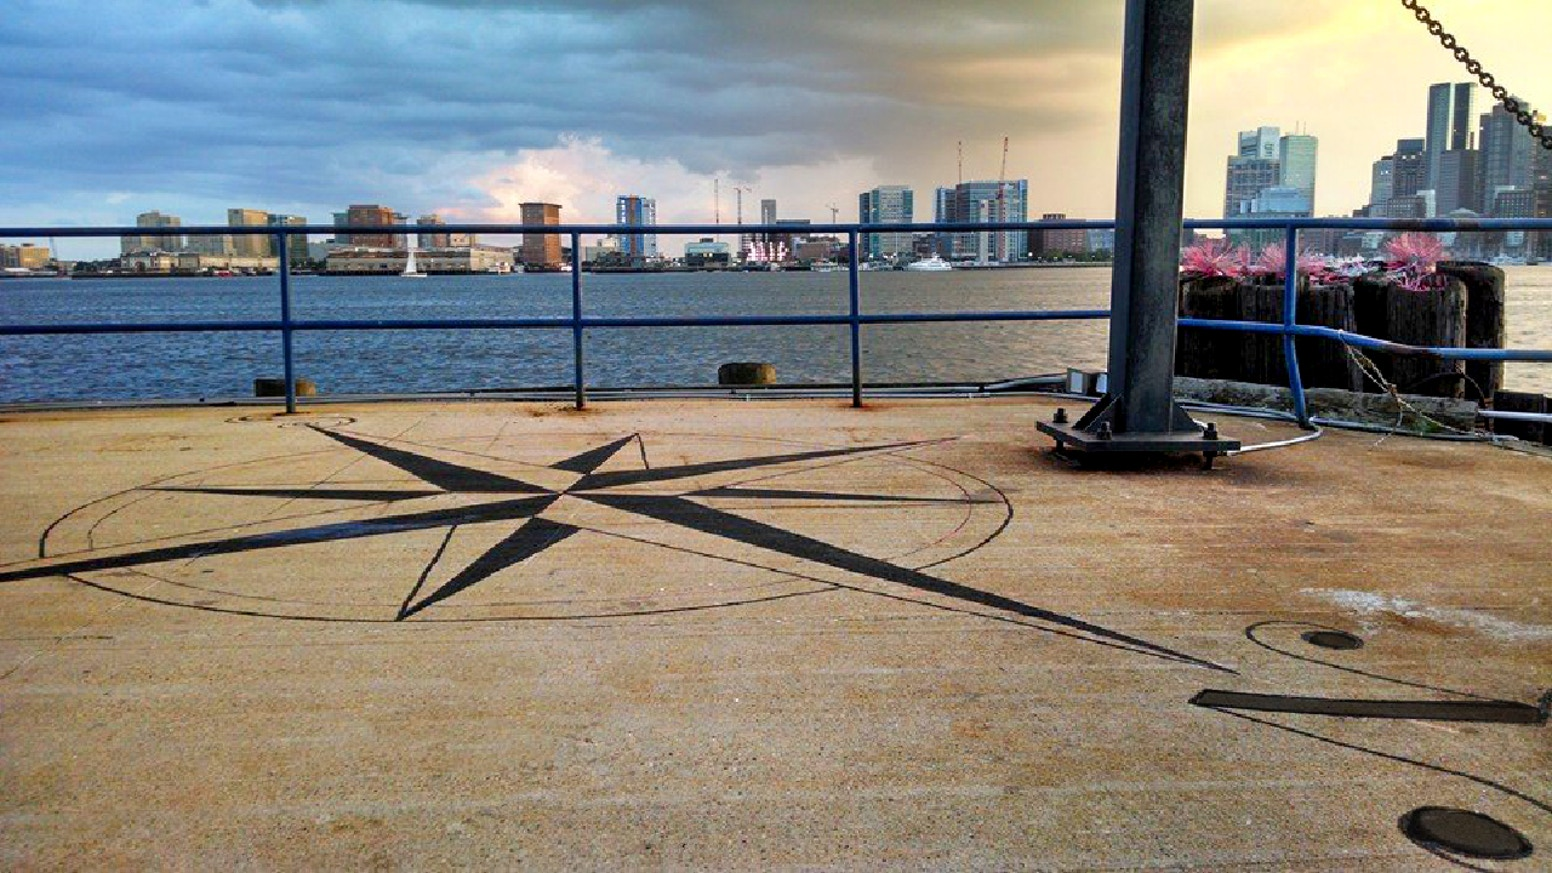 Connected by Sea: Boston's 1000-ft Tattoo! 19 large tattoo designs stained into the @HarborArts pier, honoring the cultures we've been connected to by sea; an inclusive story of Boston's history, now part of the HarborWalk.